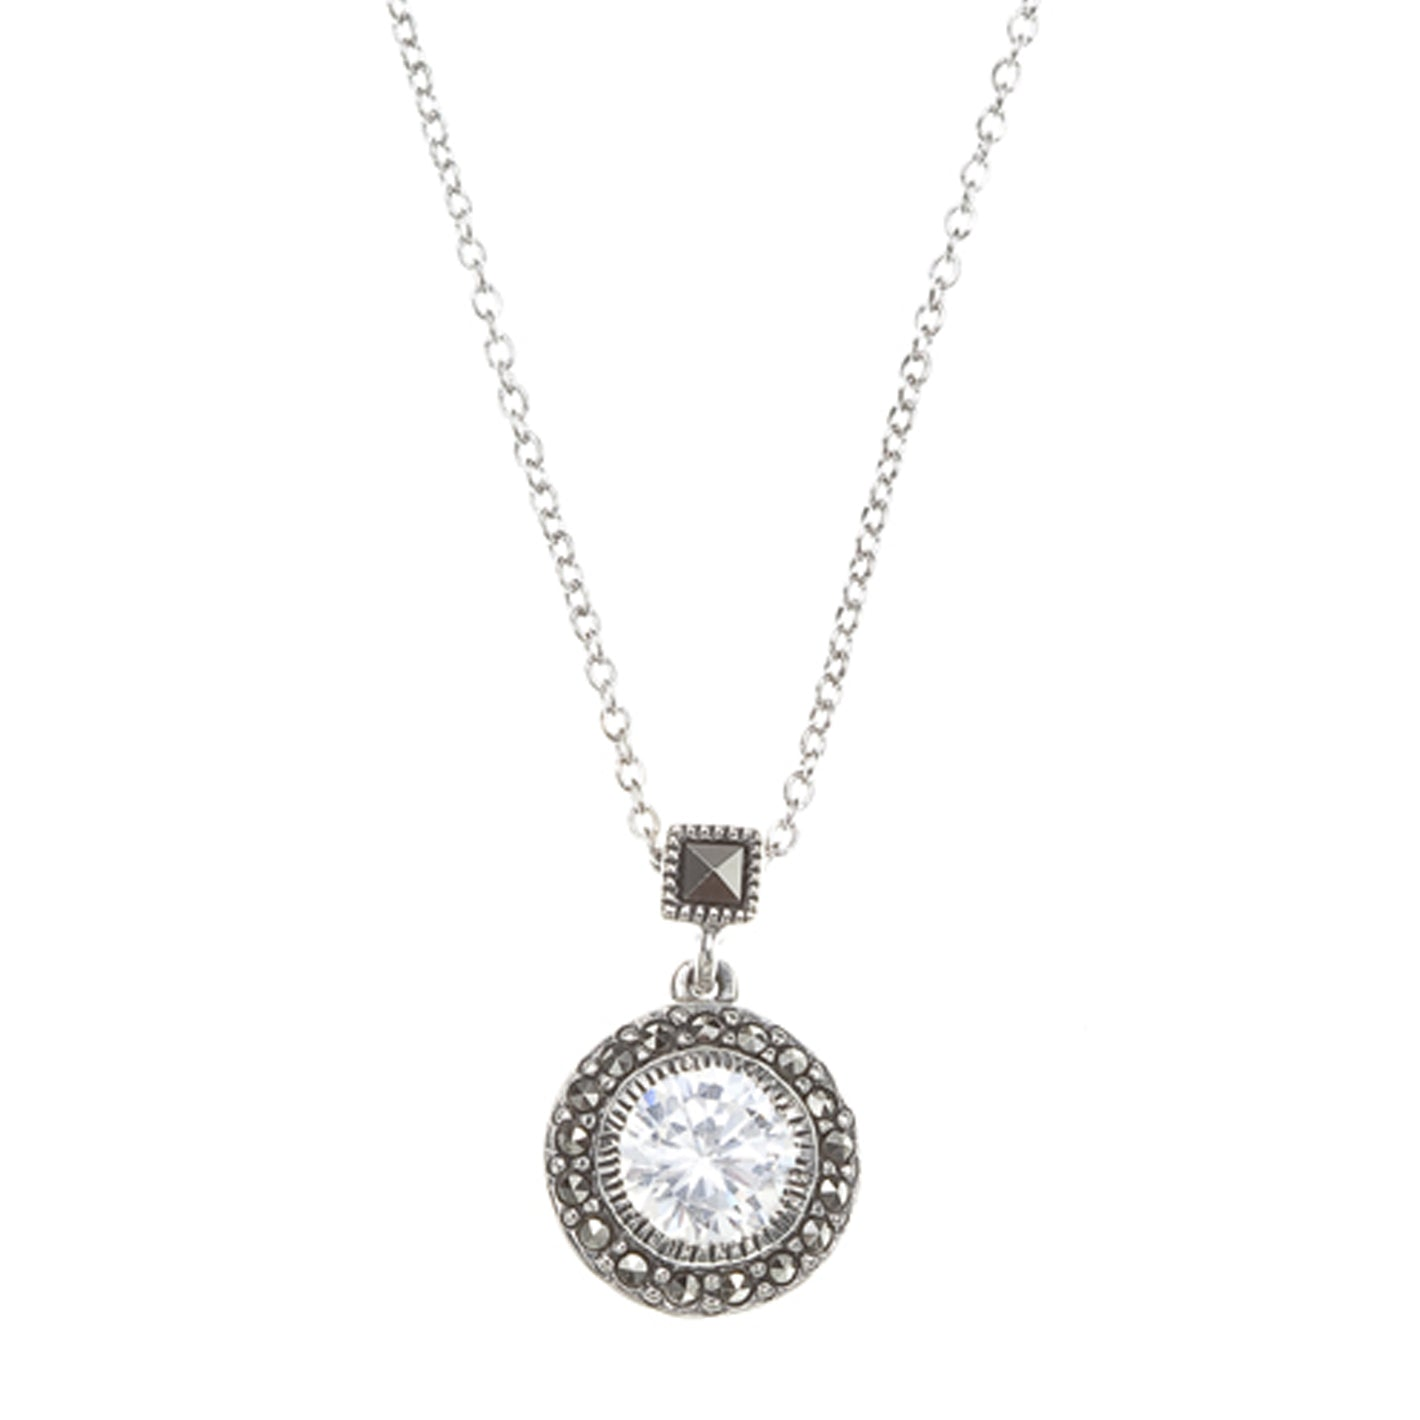 Marcasite and CZ Round Pendant by Judith Jack, Sterling Silver